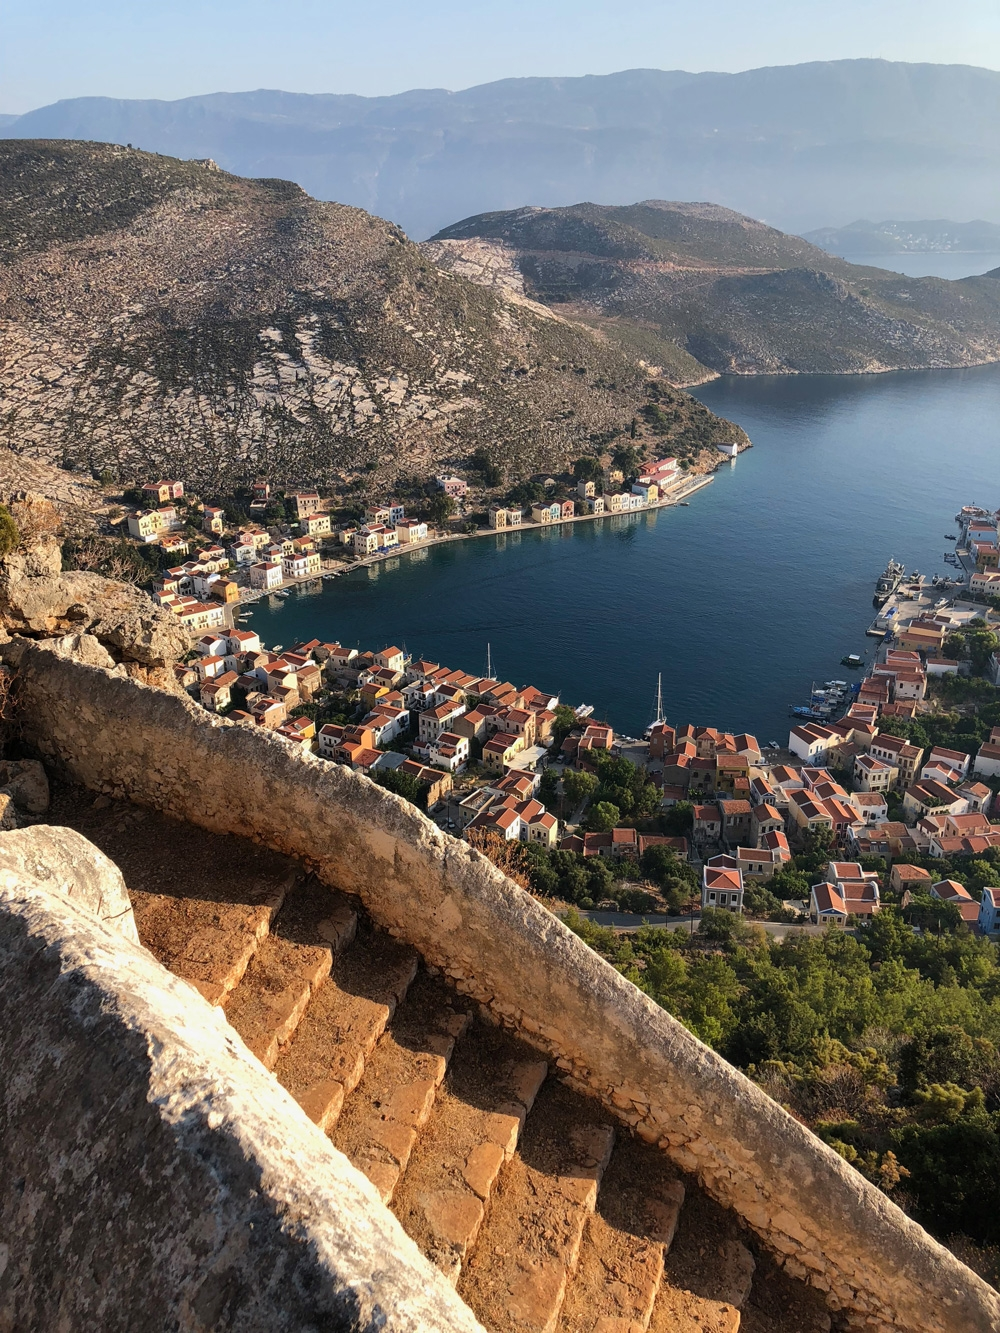 From an old stone staircase on the side of a mountain, enjoy the coastal scenery that encapsulates the calmness and beauty of the seaside town